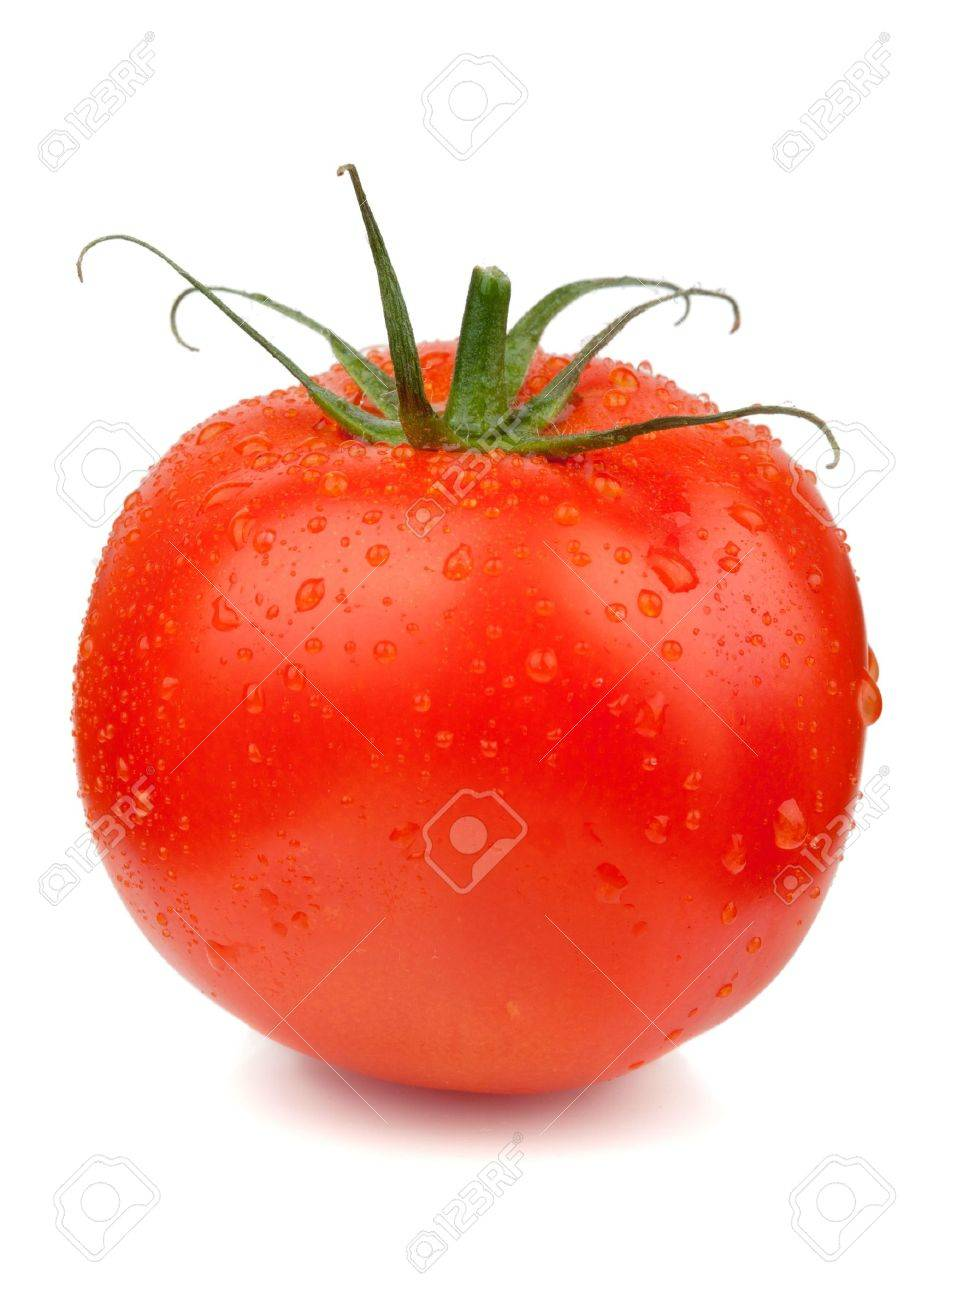 Fresh red tomato with water drops. Isolated on white background Stock Photo - 8169632